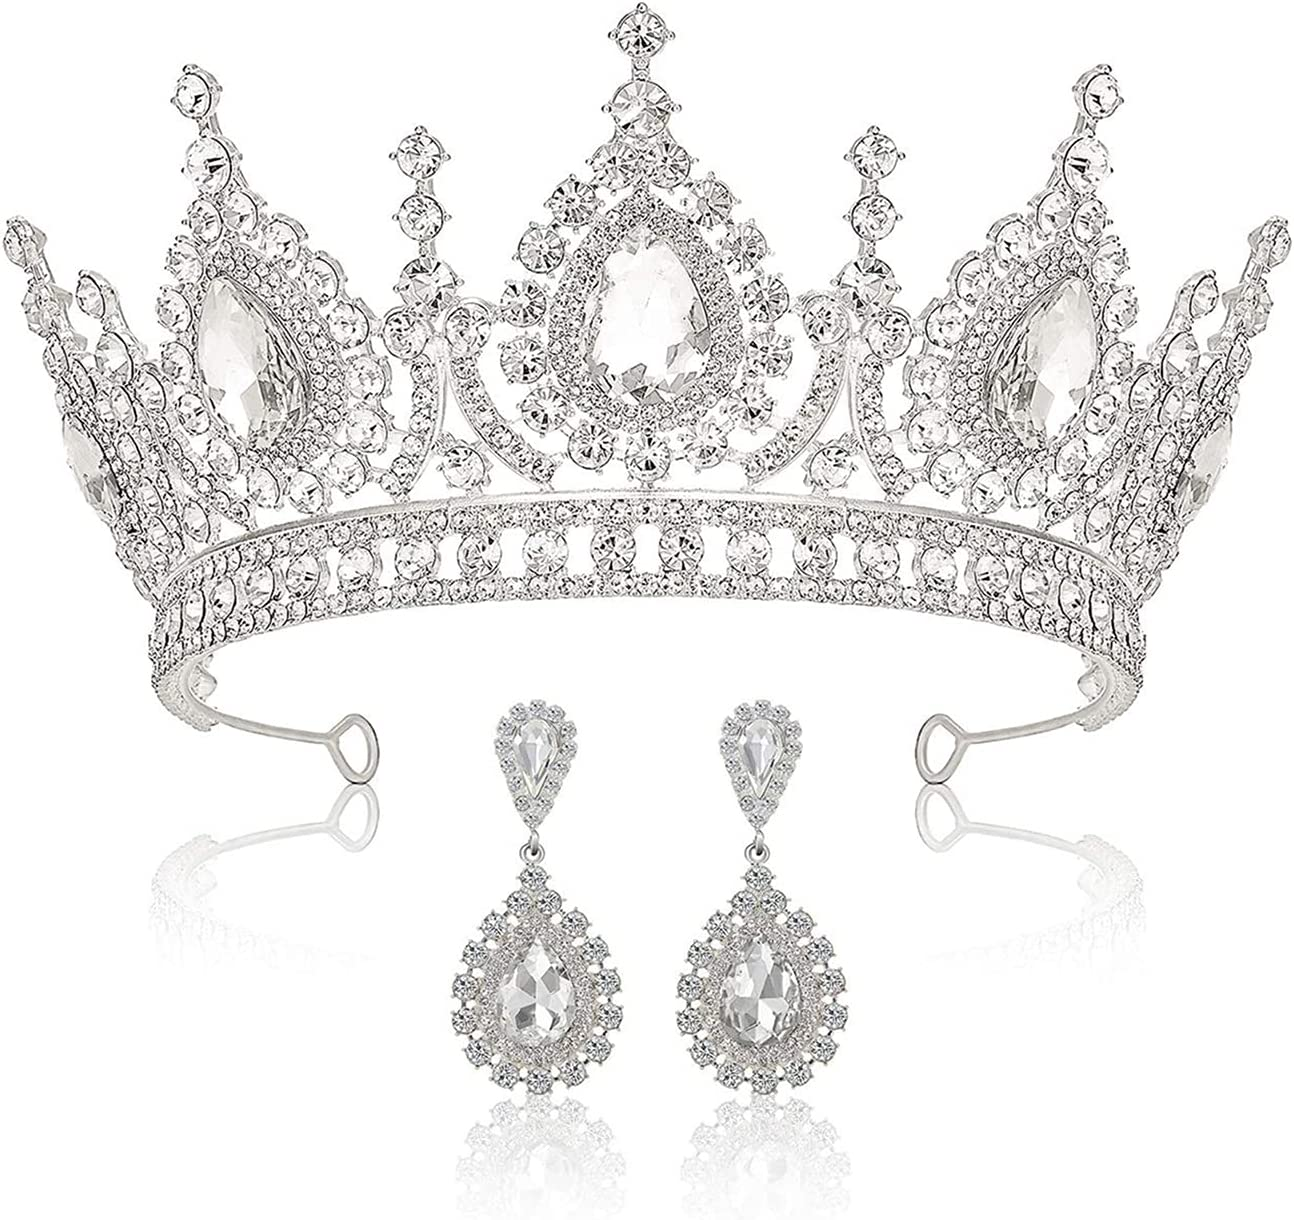 Jsmhh Baroque Tiaras and Max 61% Spring new work one after another OFF Crowns for Crystal Wedding Tiara Women